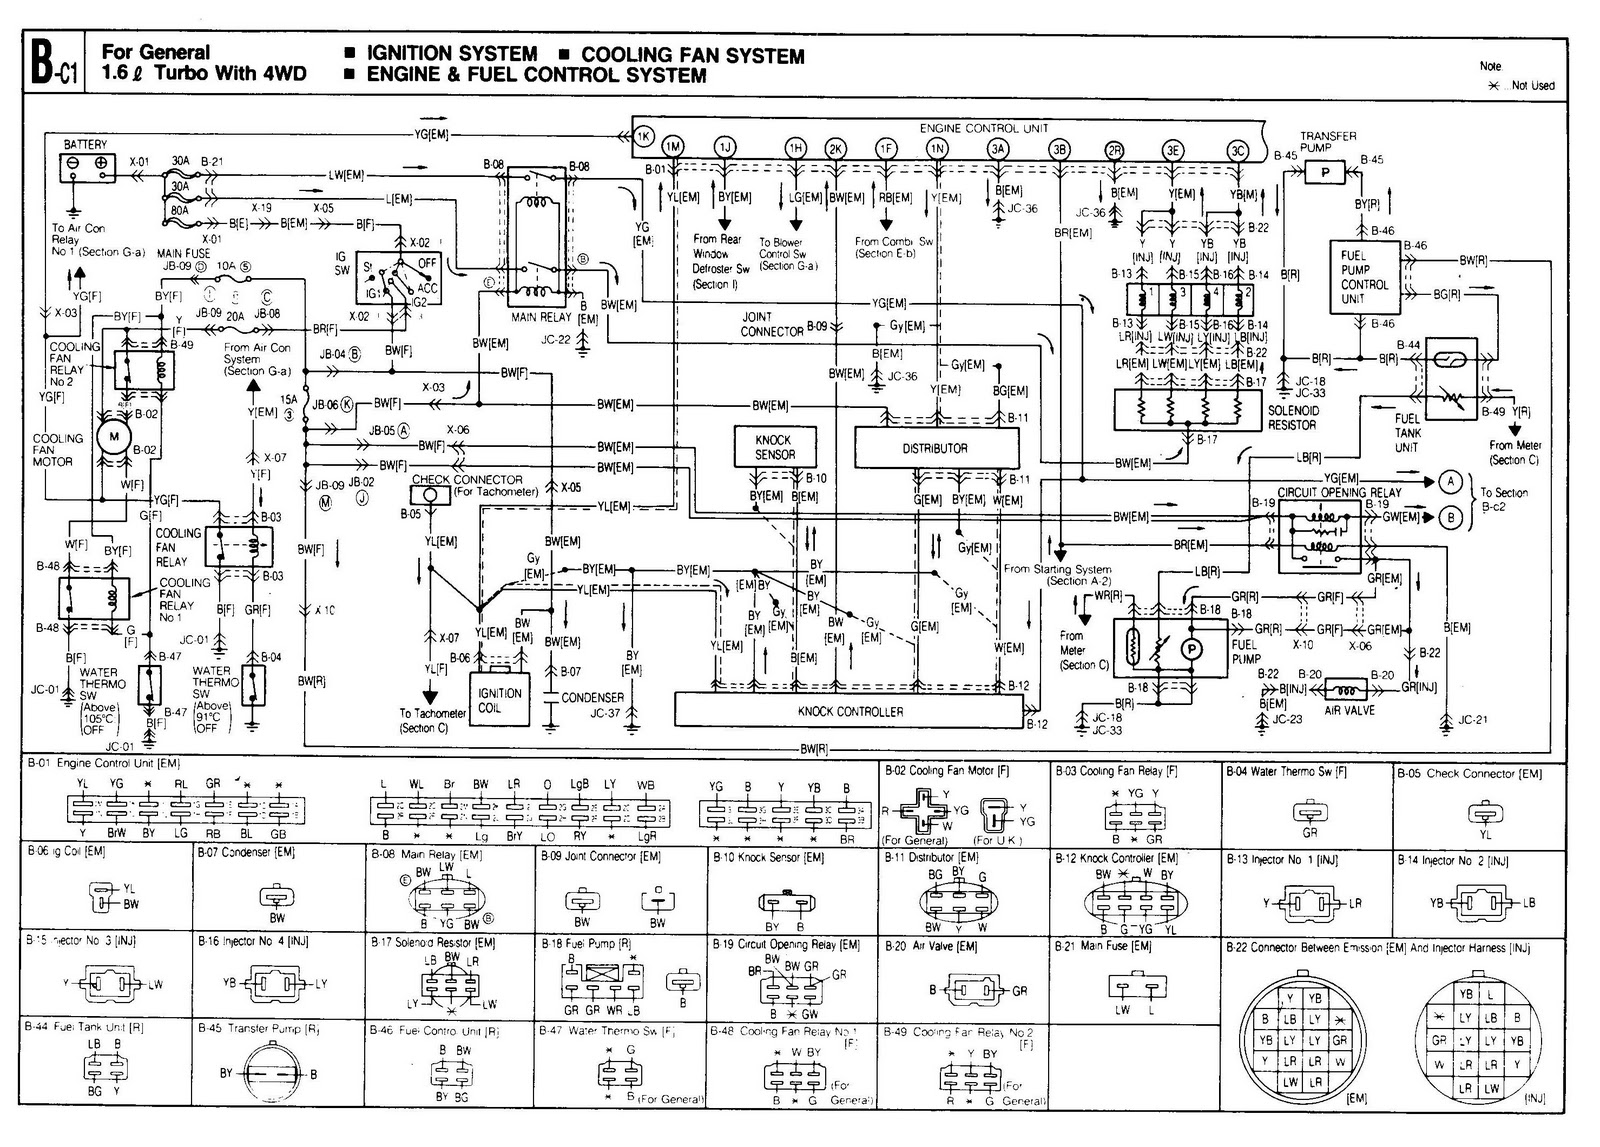 Wiring Diagram 99 honda cr v wiring diagram readingrat net Mazda 6 Stereo Diagram at fashall.co